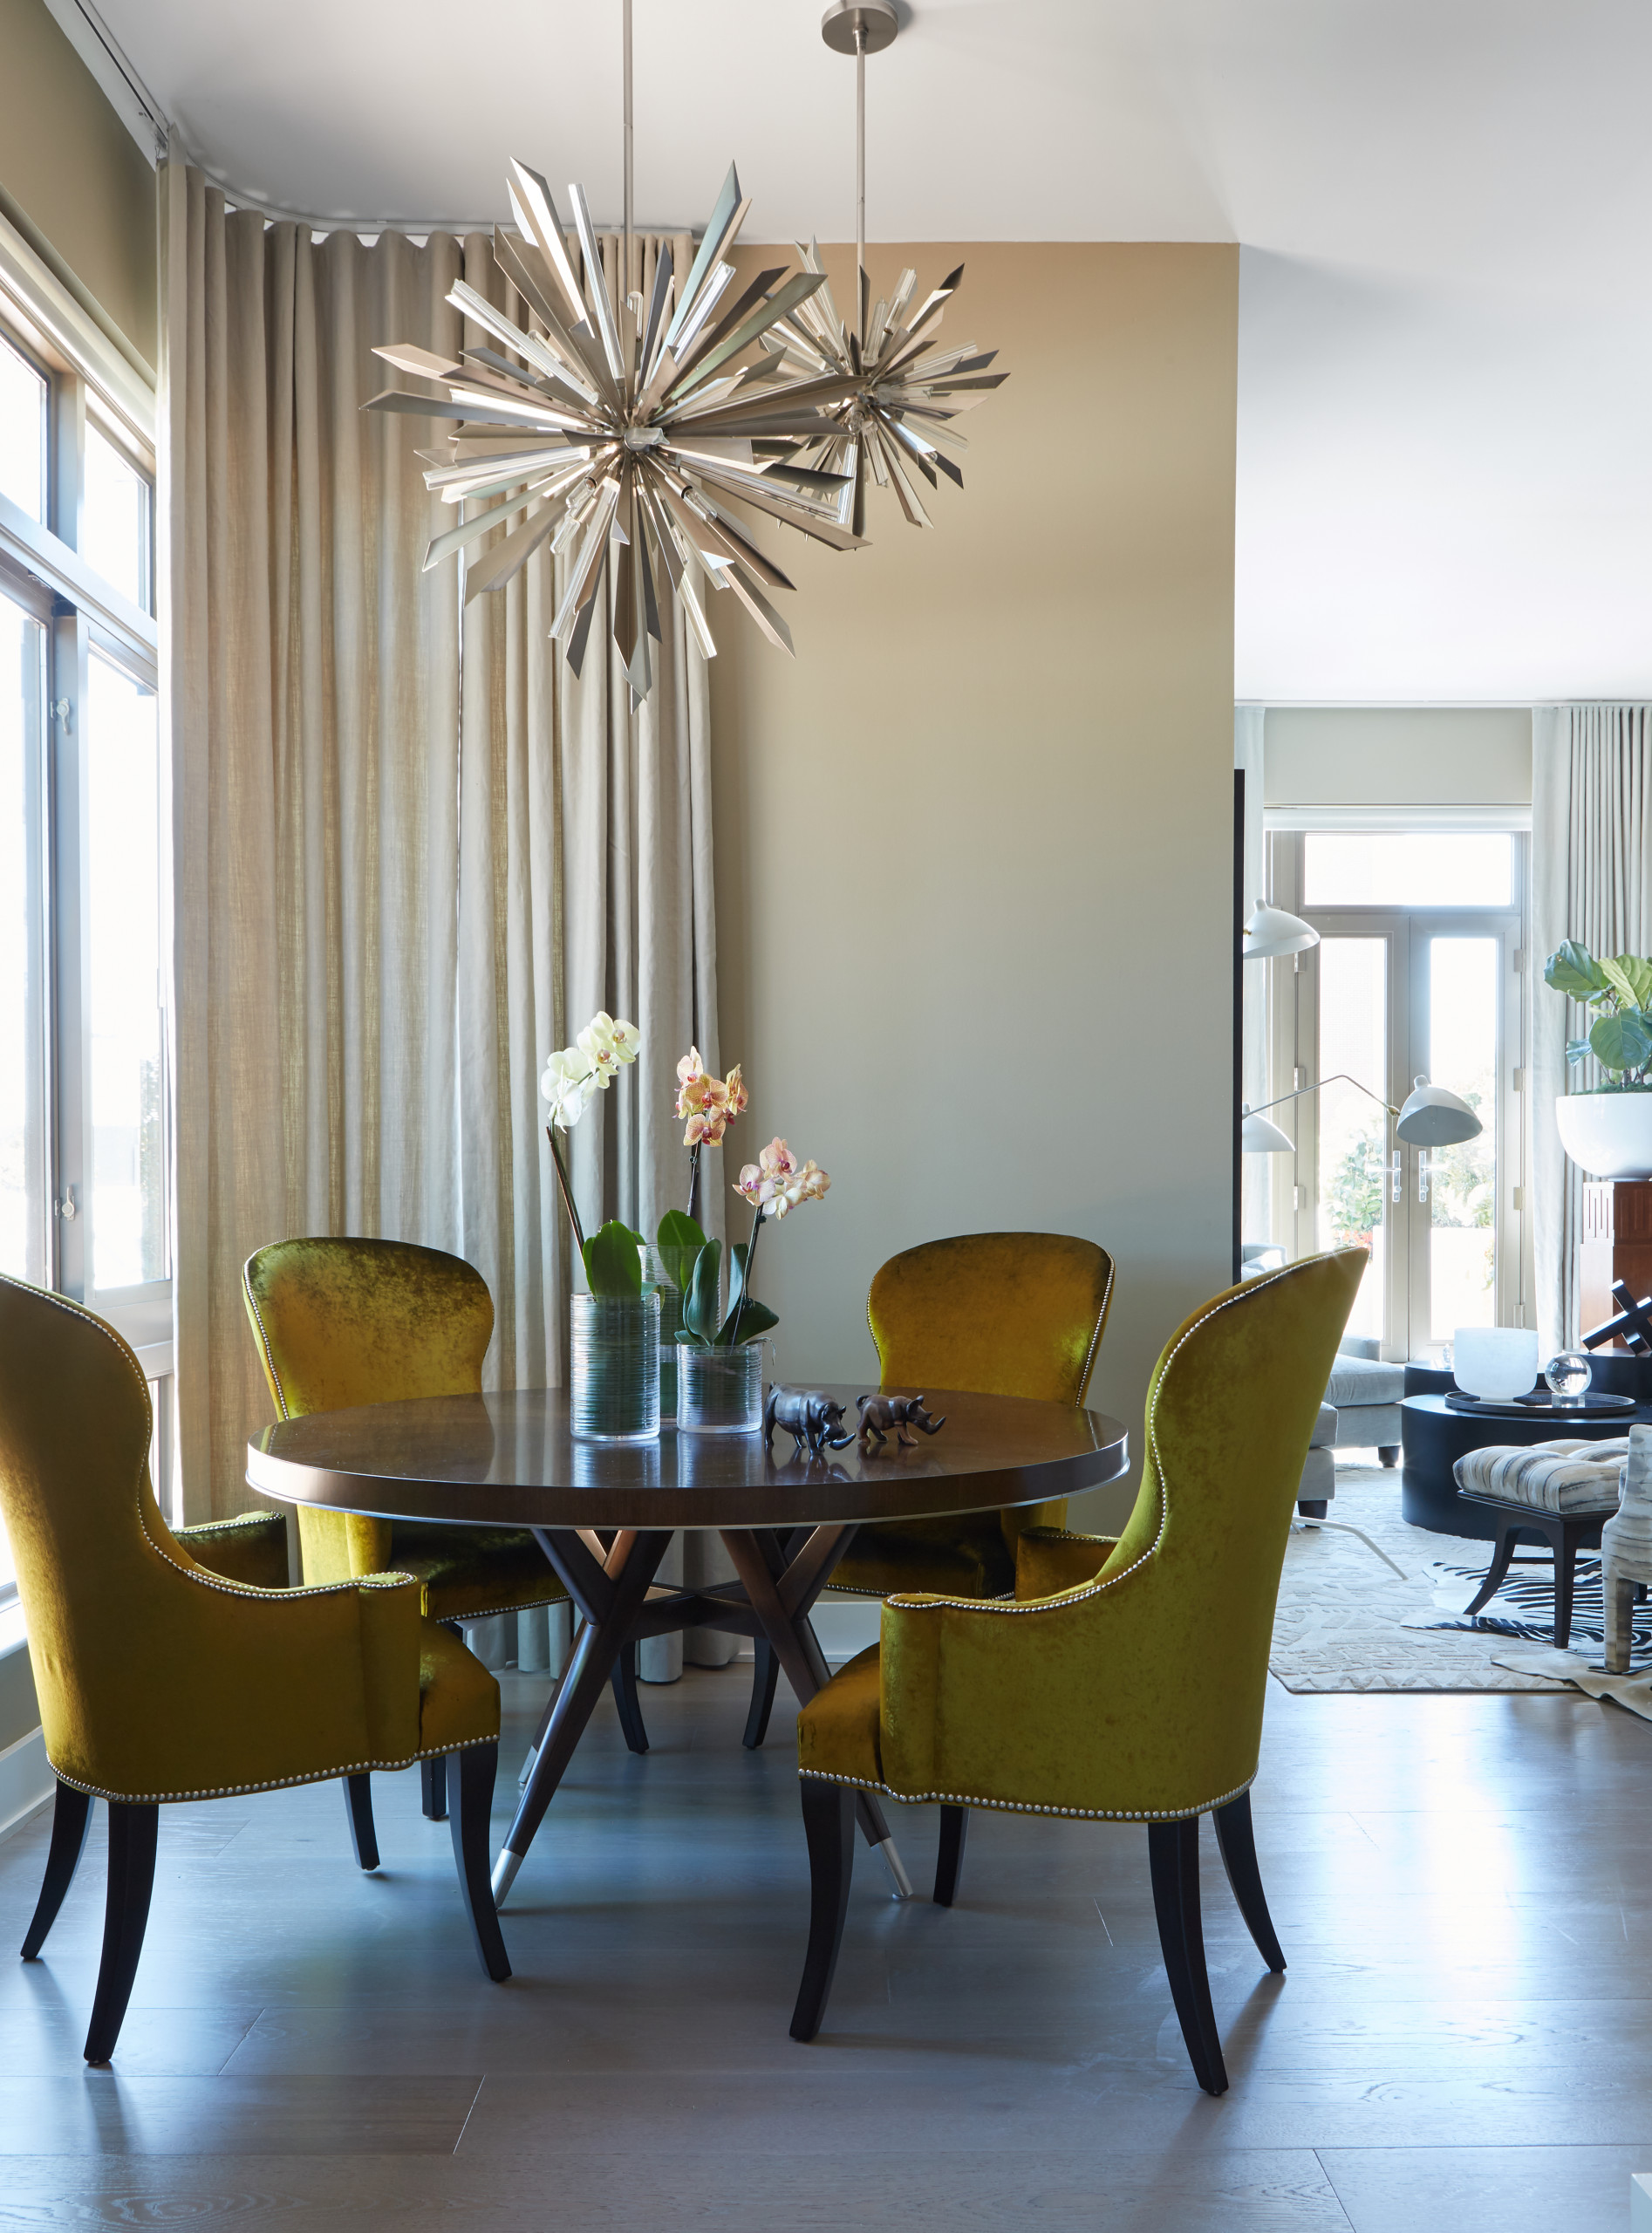 Small-contemporary-dining-room-of-NYC-condo-with-bright-yellow-green-chairs-that-add-an-air-of-luxury-16735